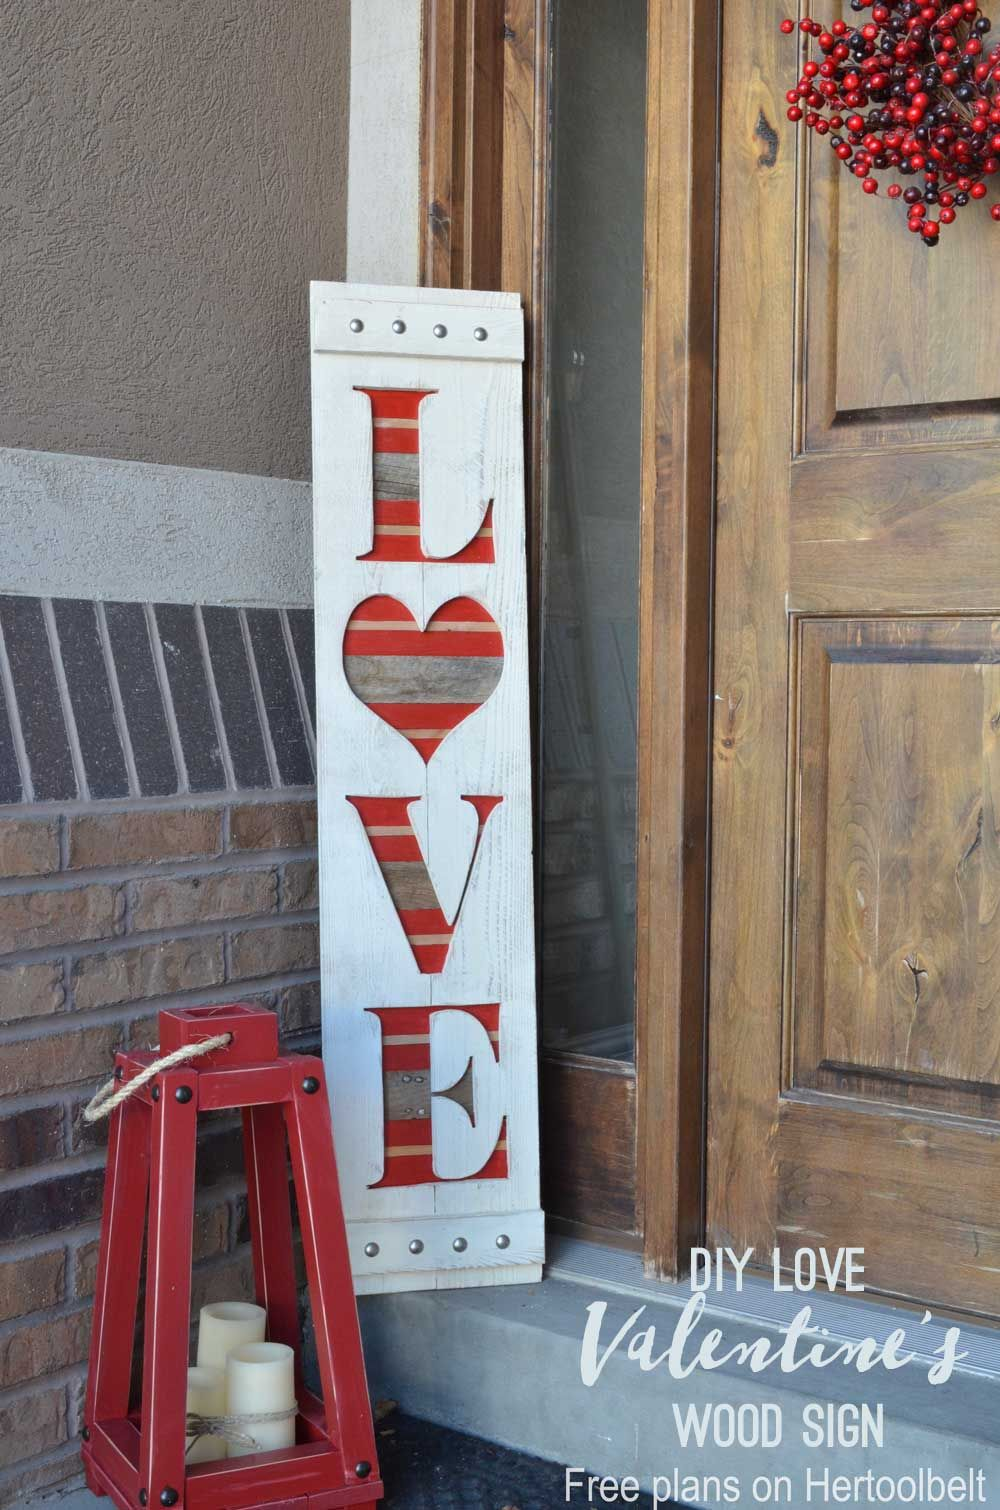 Diy Love Wood Sign For Valentine S Or Wedding Decor Free Plans And Tutorial